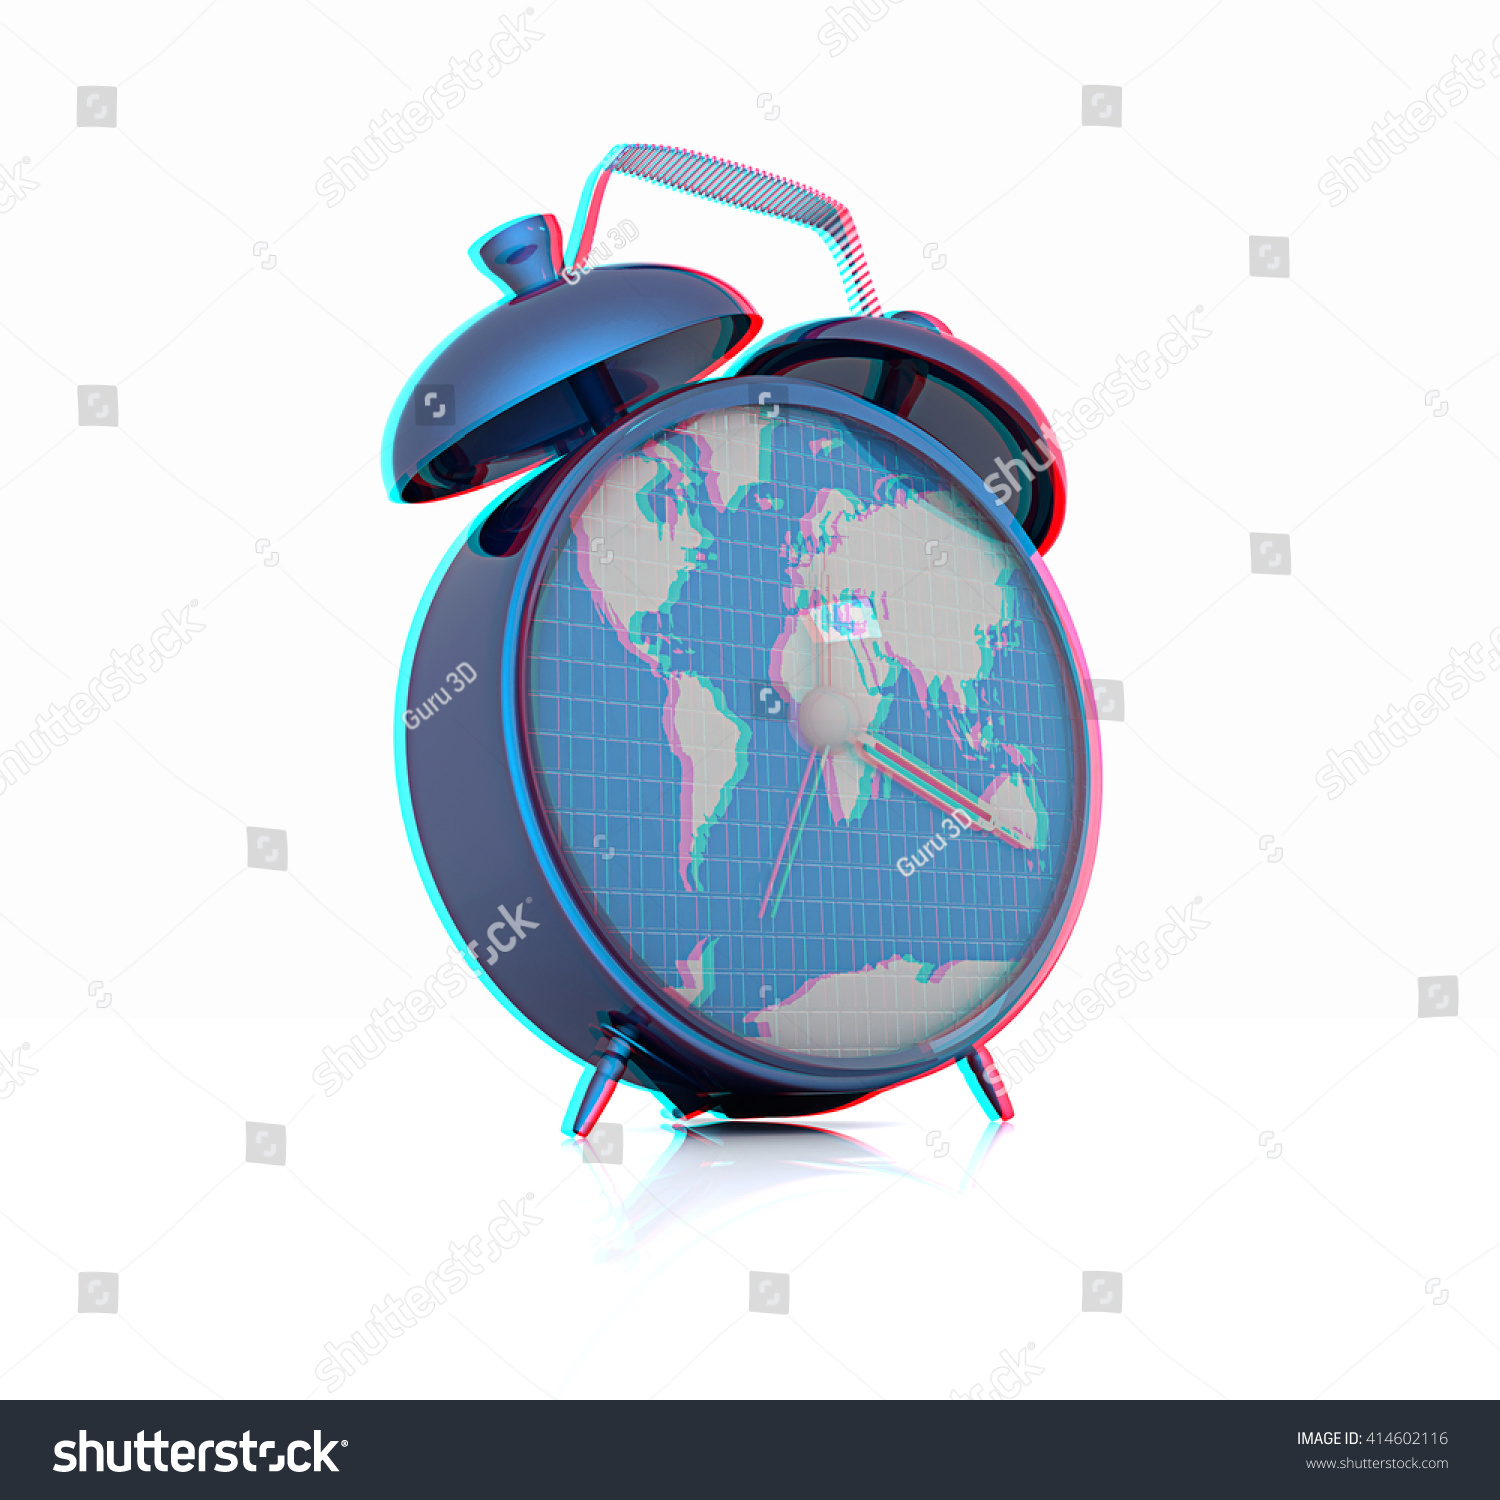 World Map 3d View.Royalty Free Stock Illustration Of Clock World Map 3 D Illustration